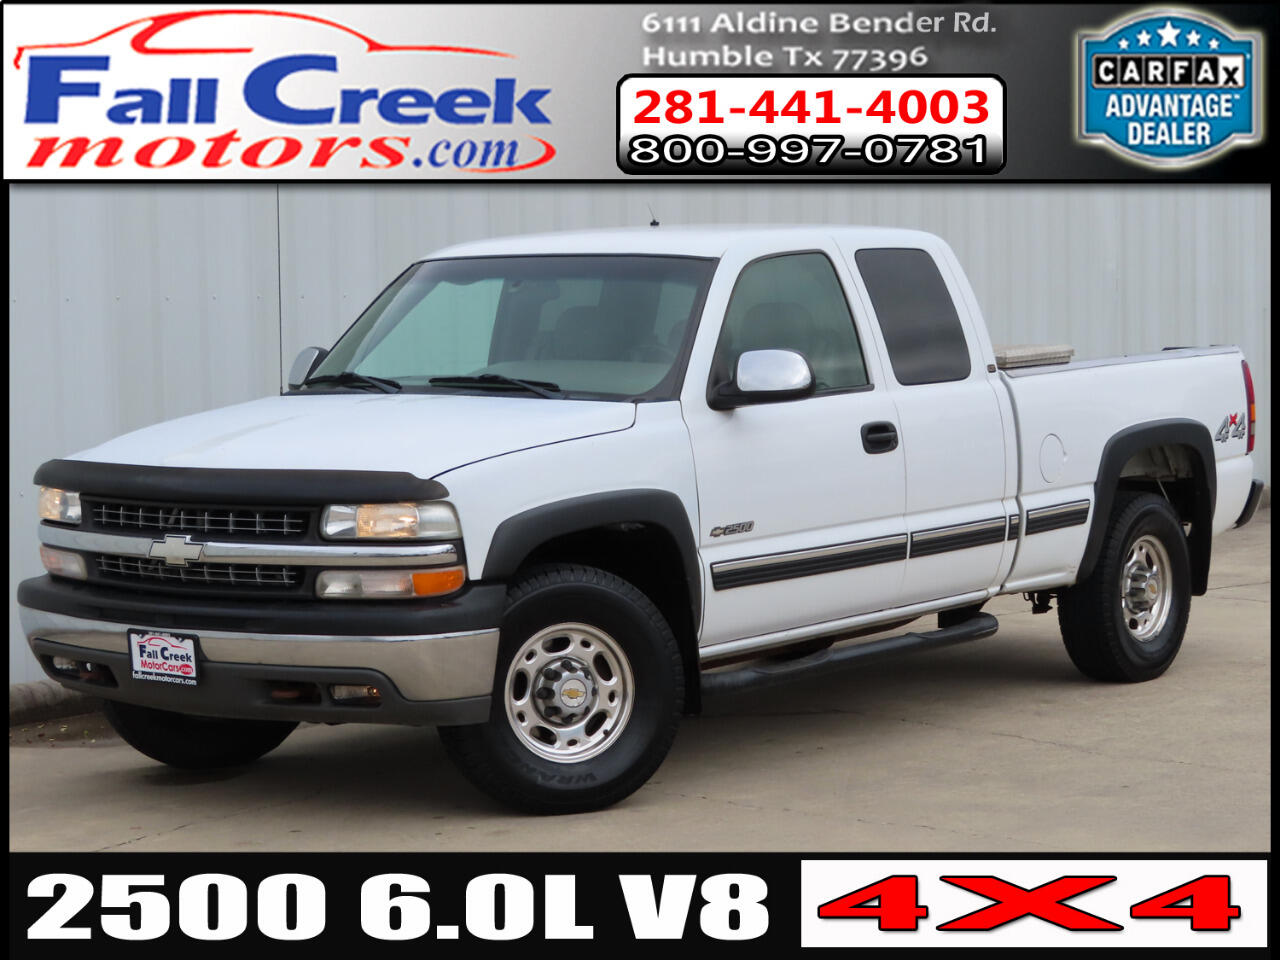 Chevrolet Silverado 2500 LT Ext. Cab 4-Door Short Bed 4WD 2000